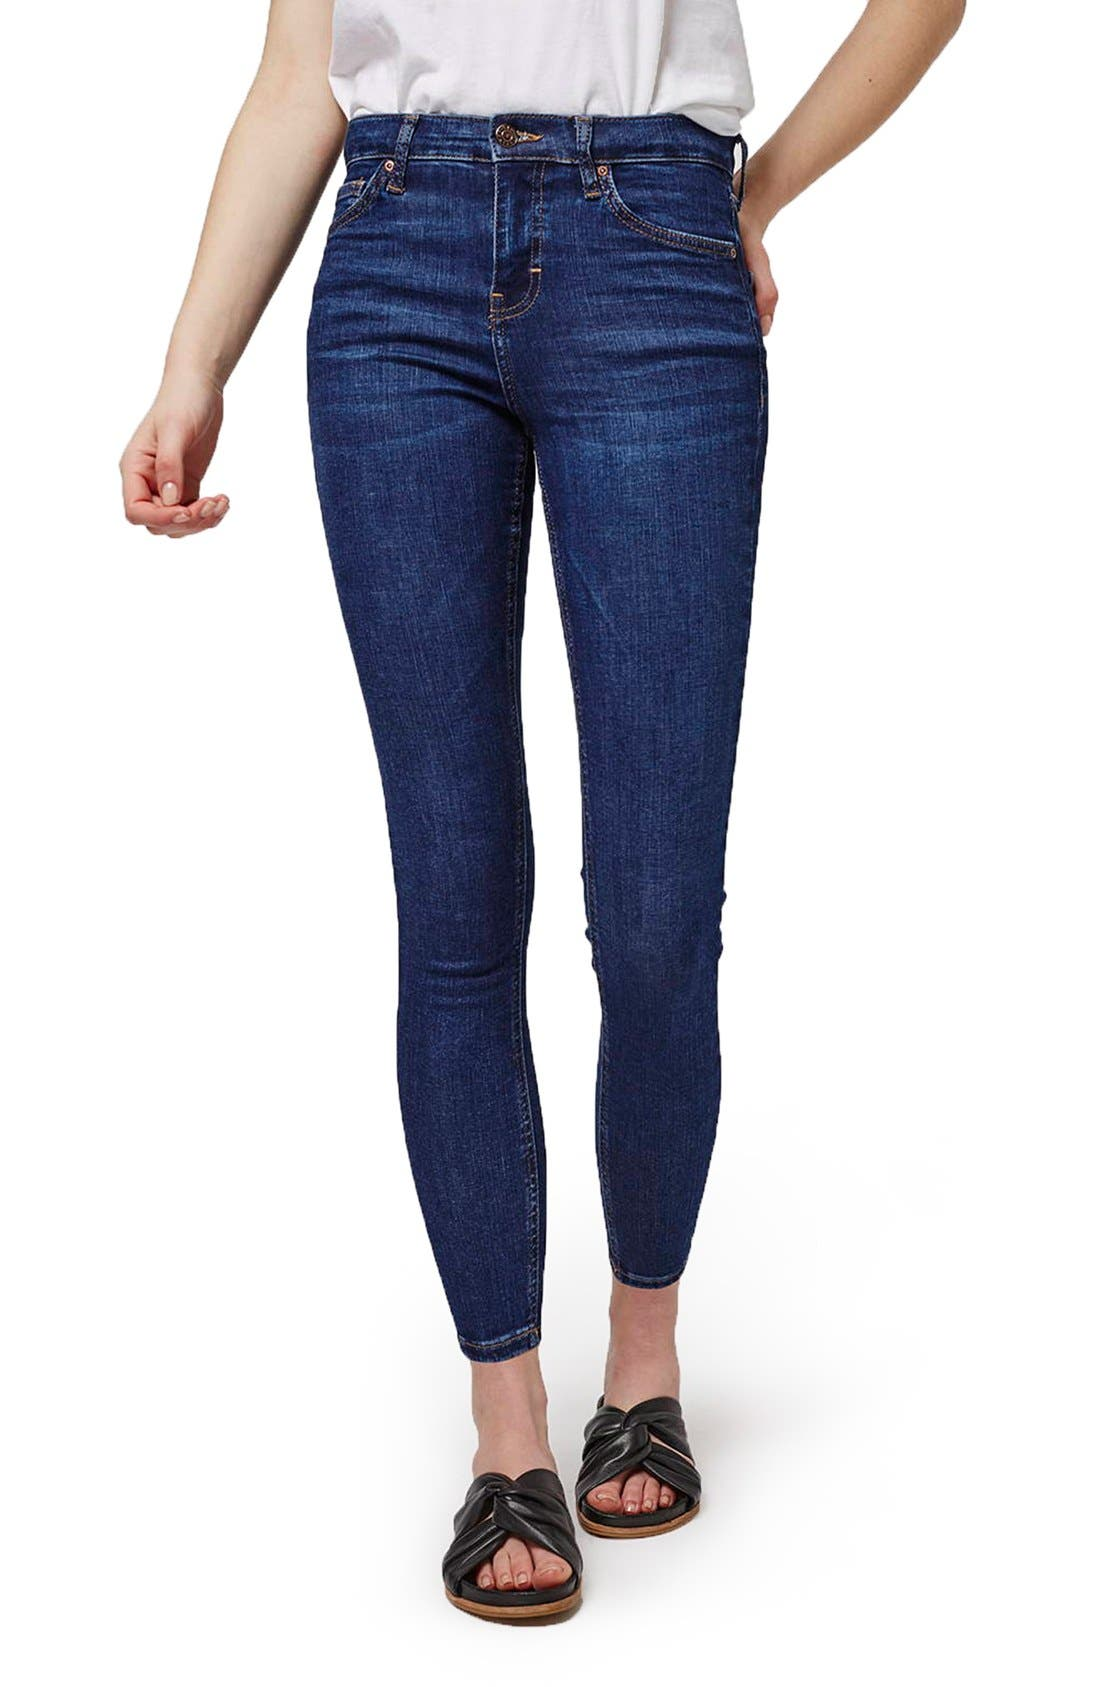 Alternate Image 1 Selected - Topshop 'Jamie' High Rise Ankle Skinny Jeans (Petite)